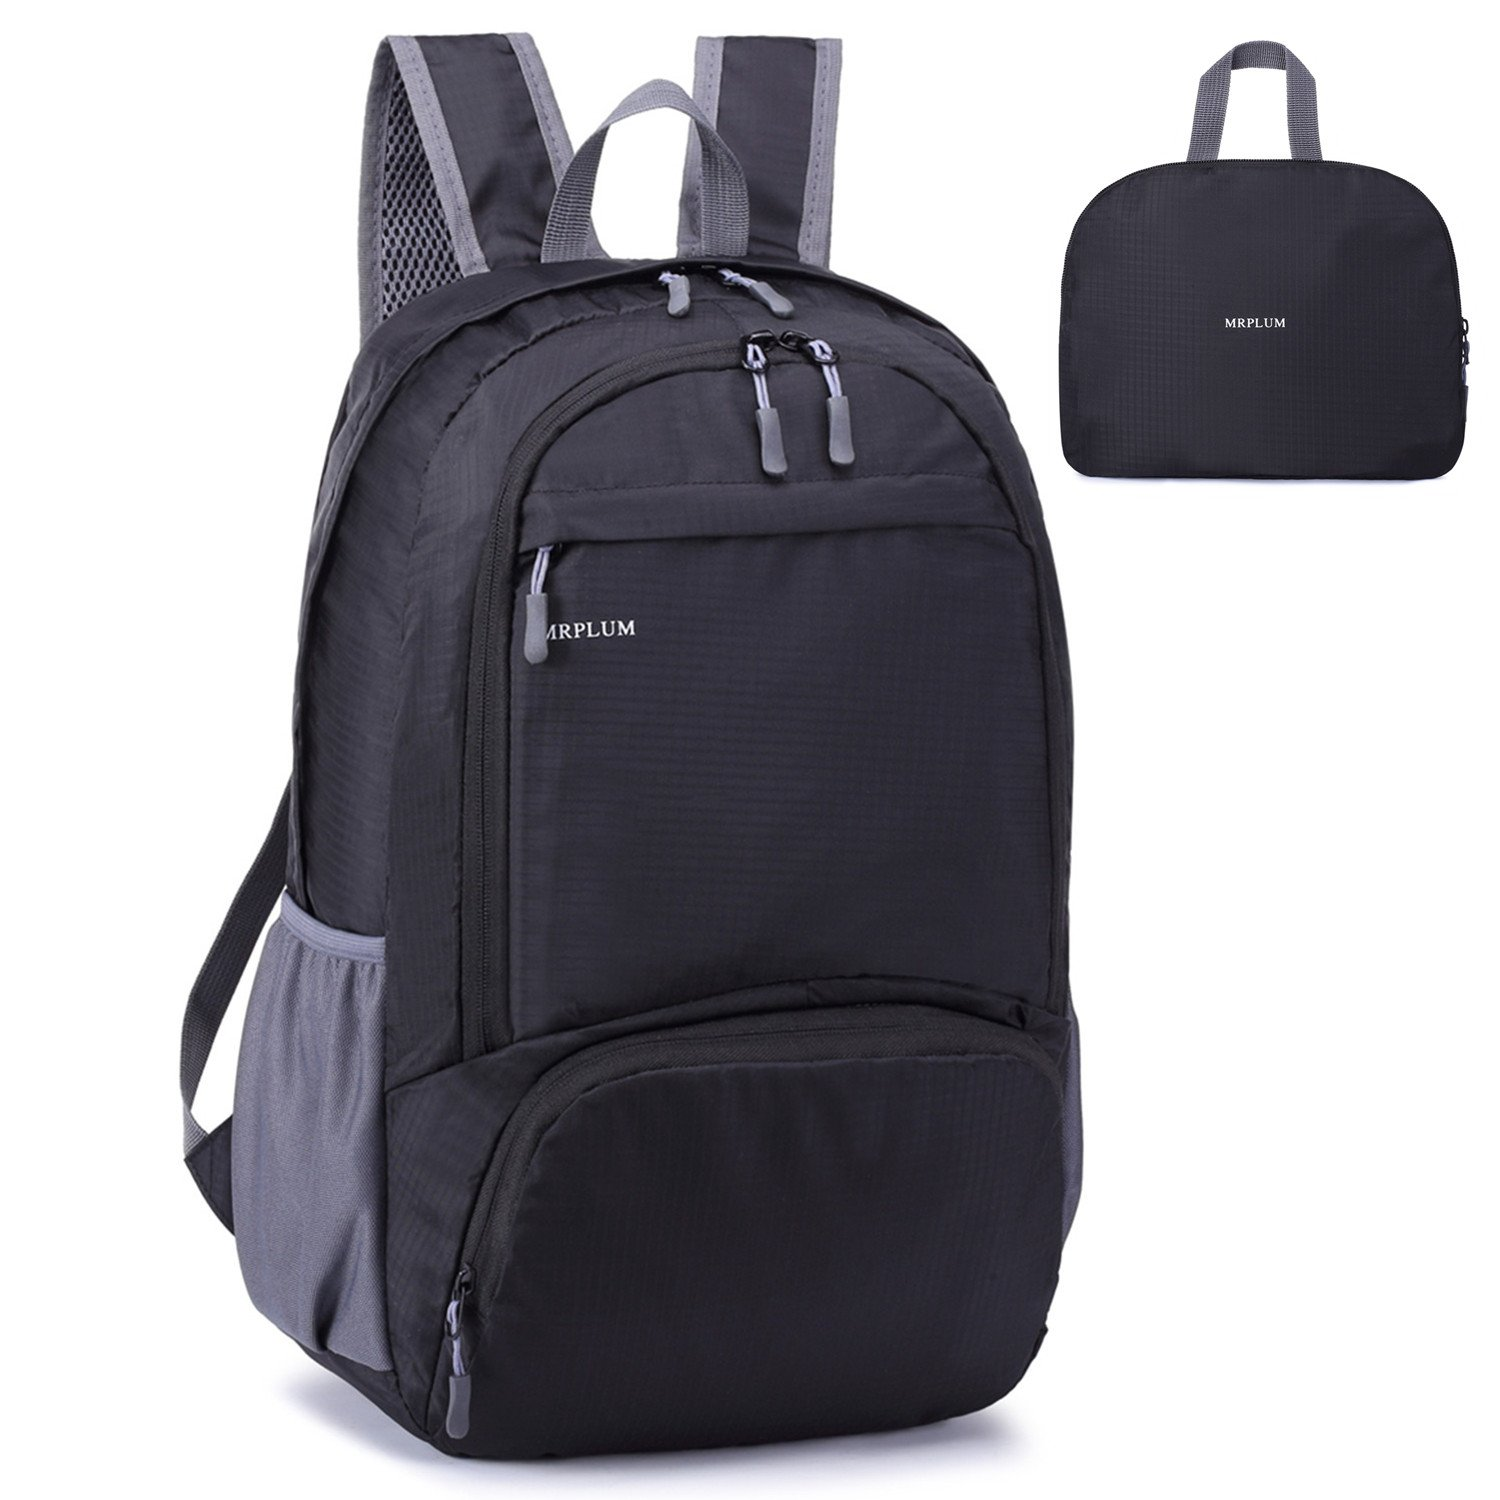 Luggage Backpacks Backpack Accessories